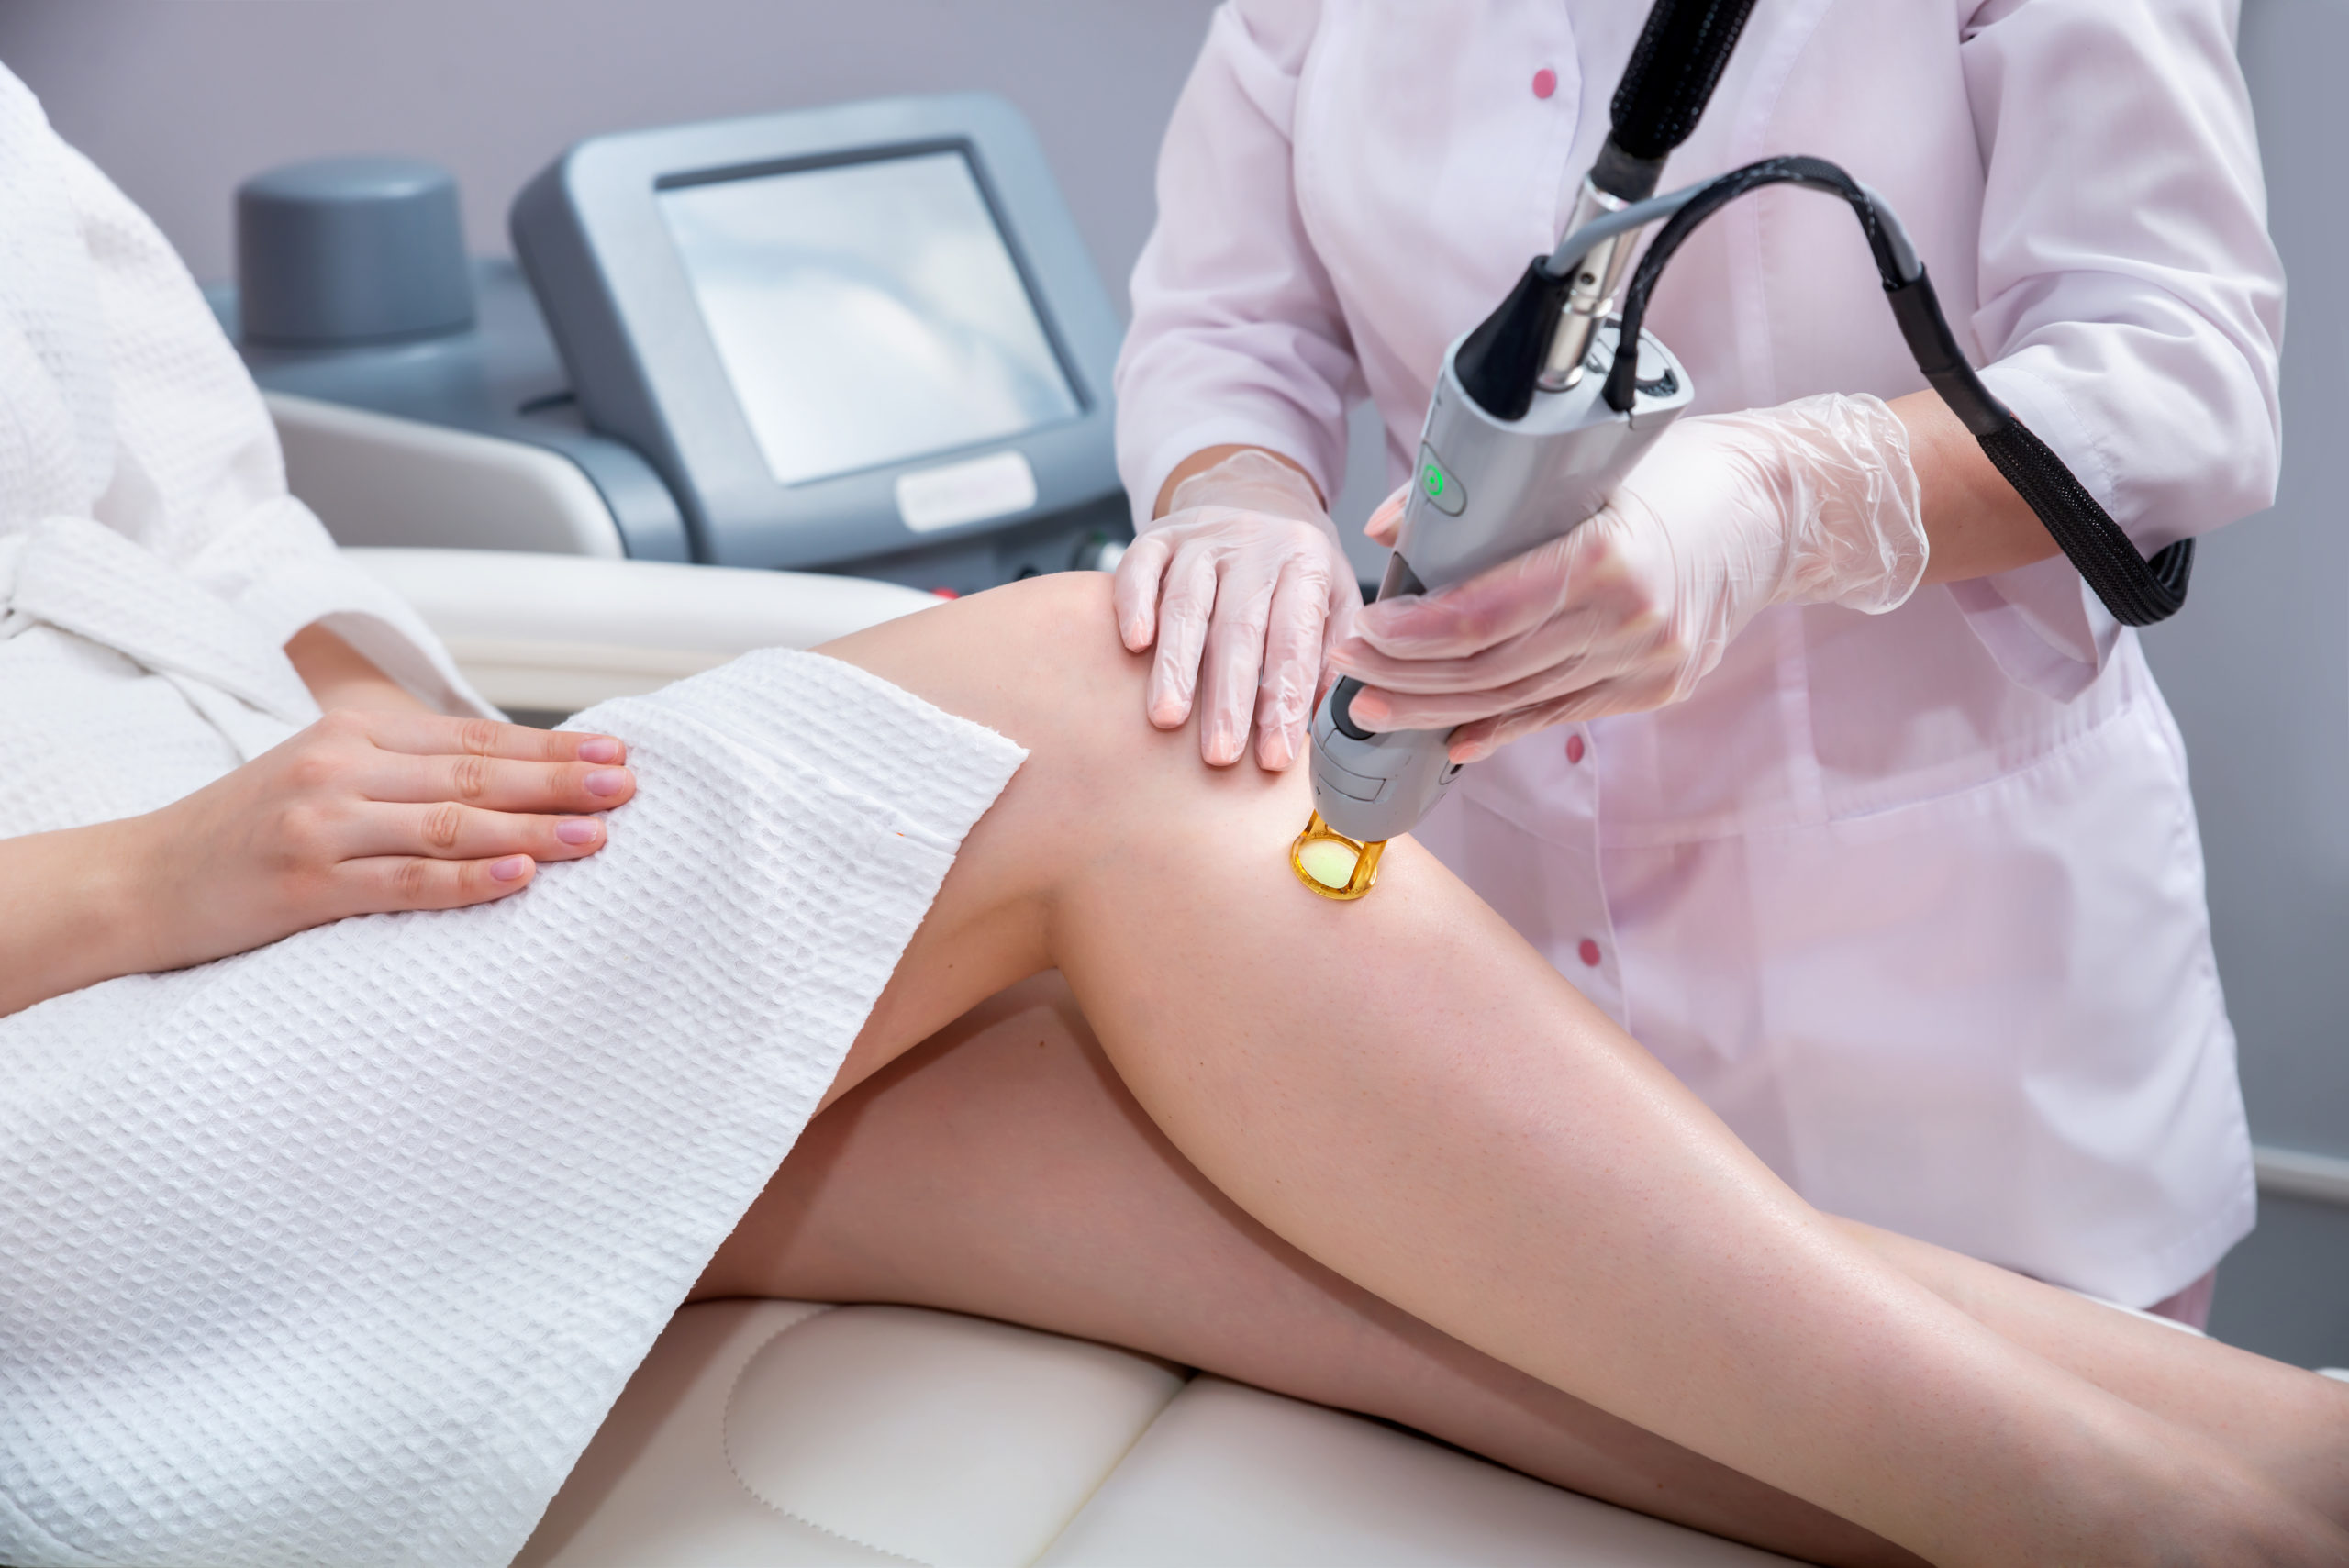 Why is client consent important for Laser Hair Removal?